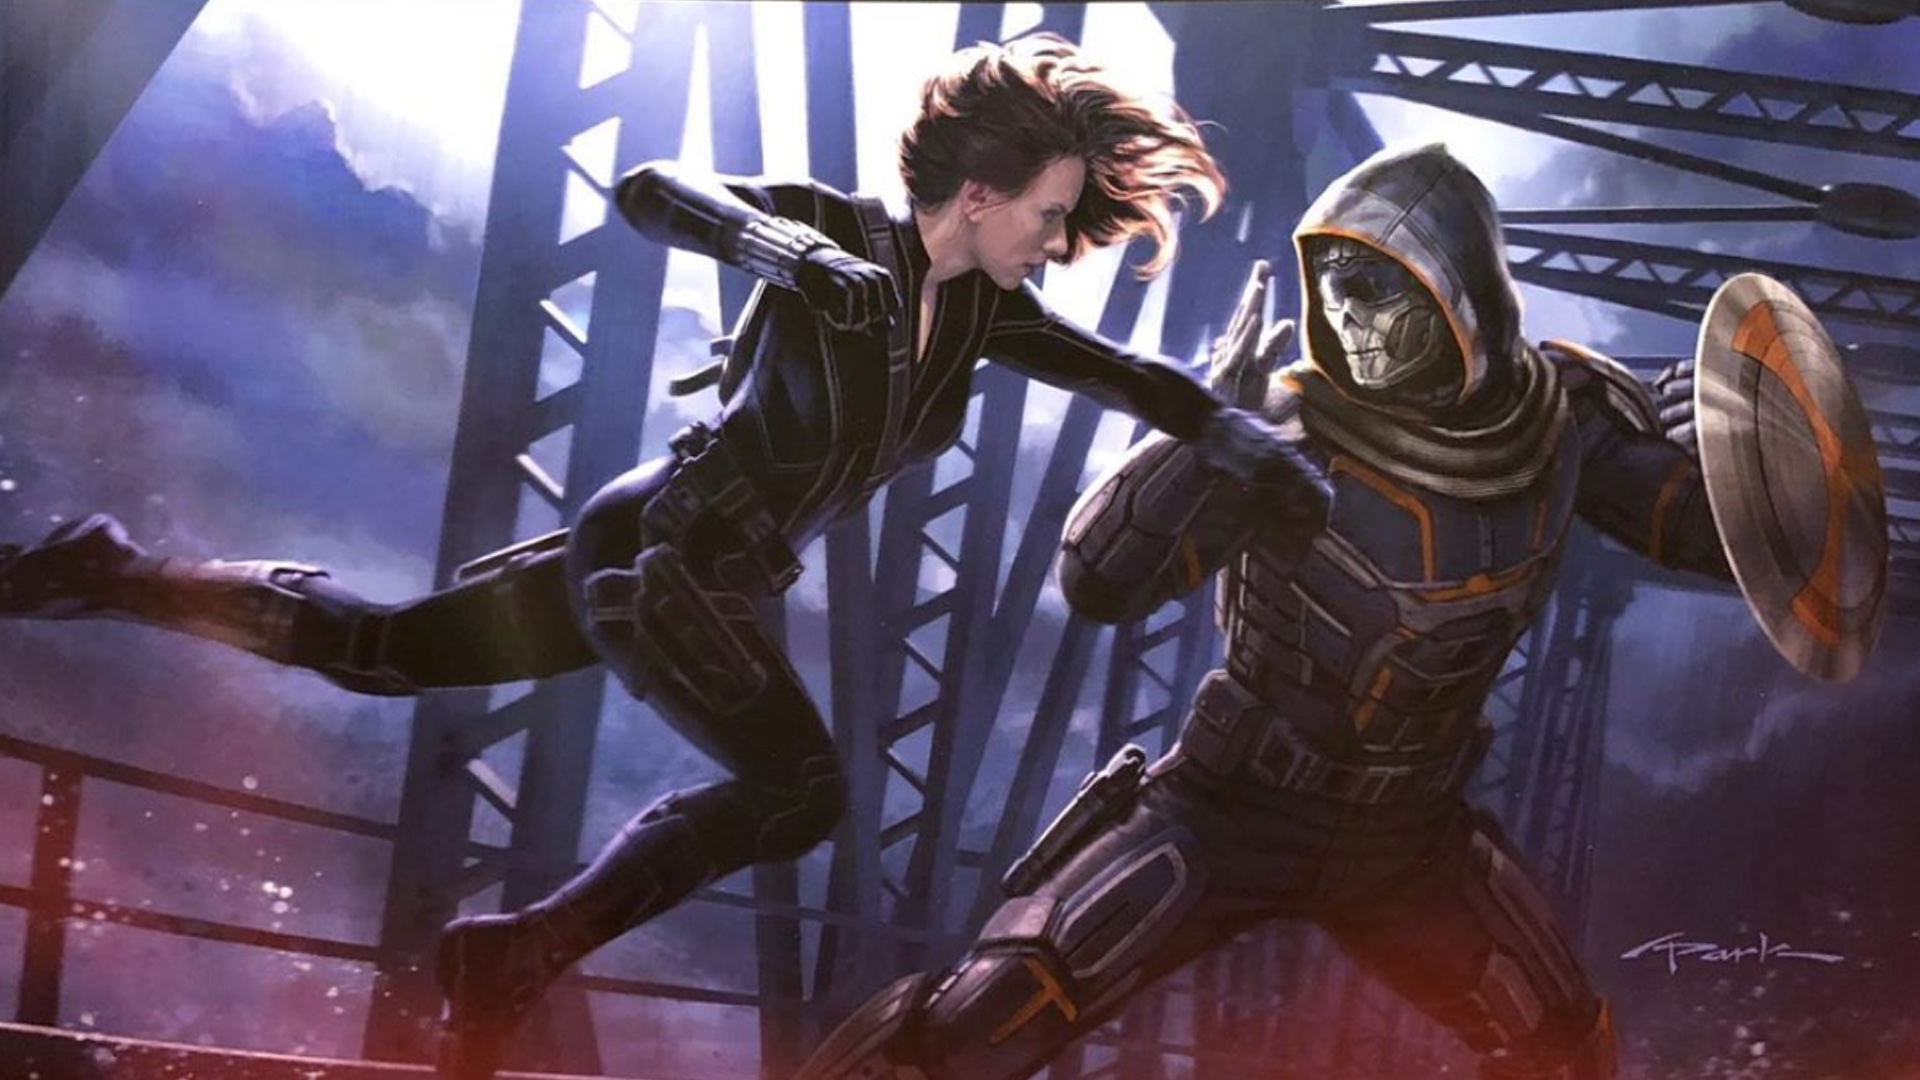 is-rachel-weisz-taskmaster-in-black-widow-she-says-the-character-has-a-significant-role-in-the-film3